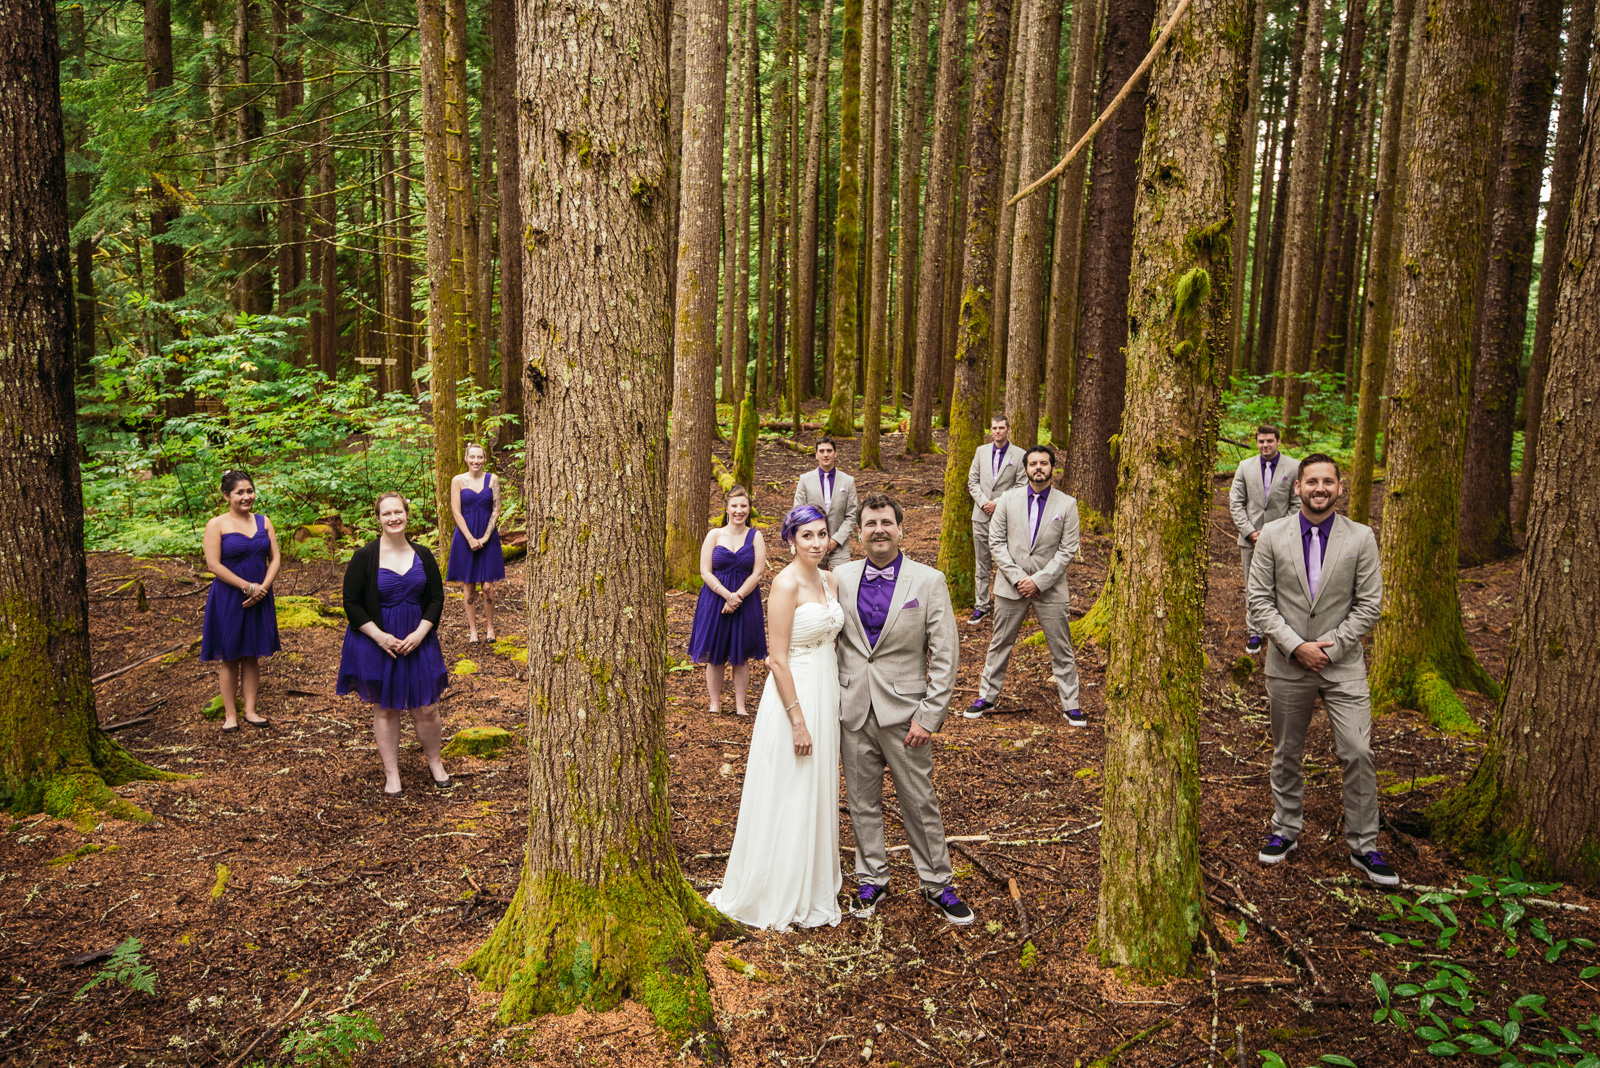 bc-wedding-photographers-kitimat-minette-bay-lodge-wedding-17.jpg